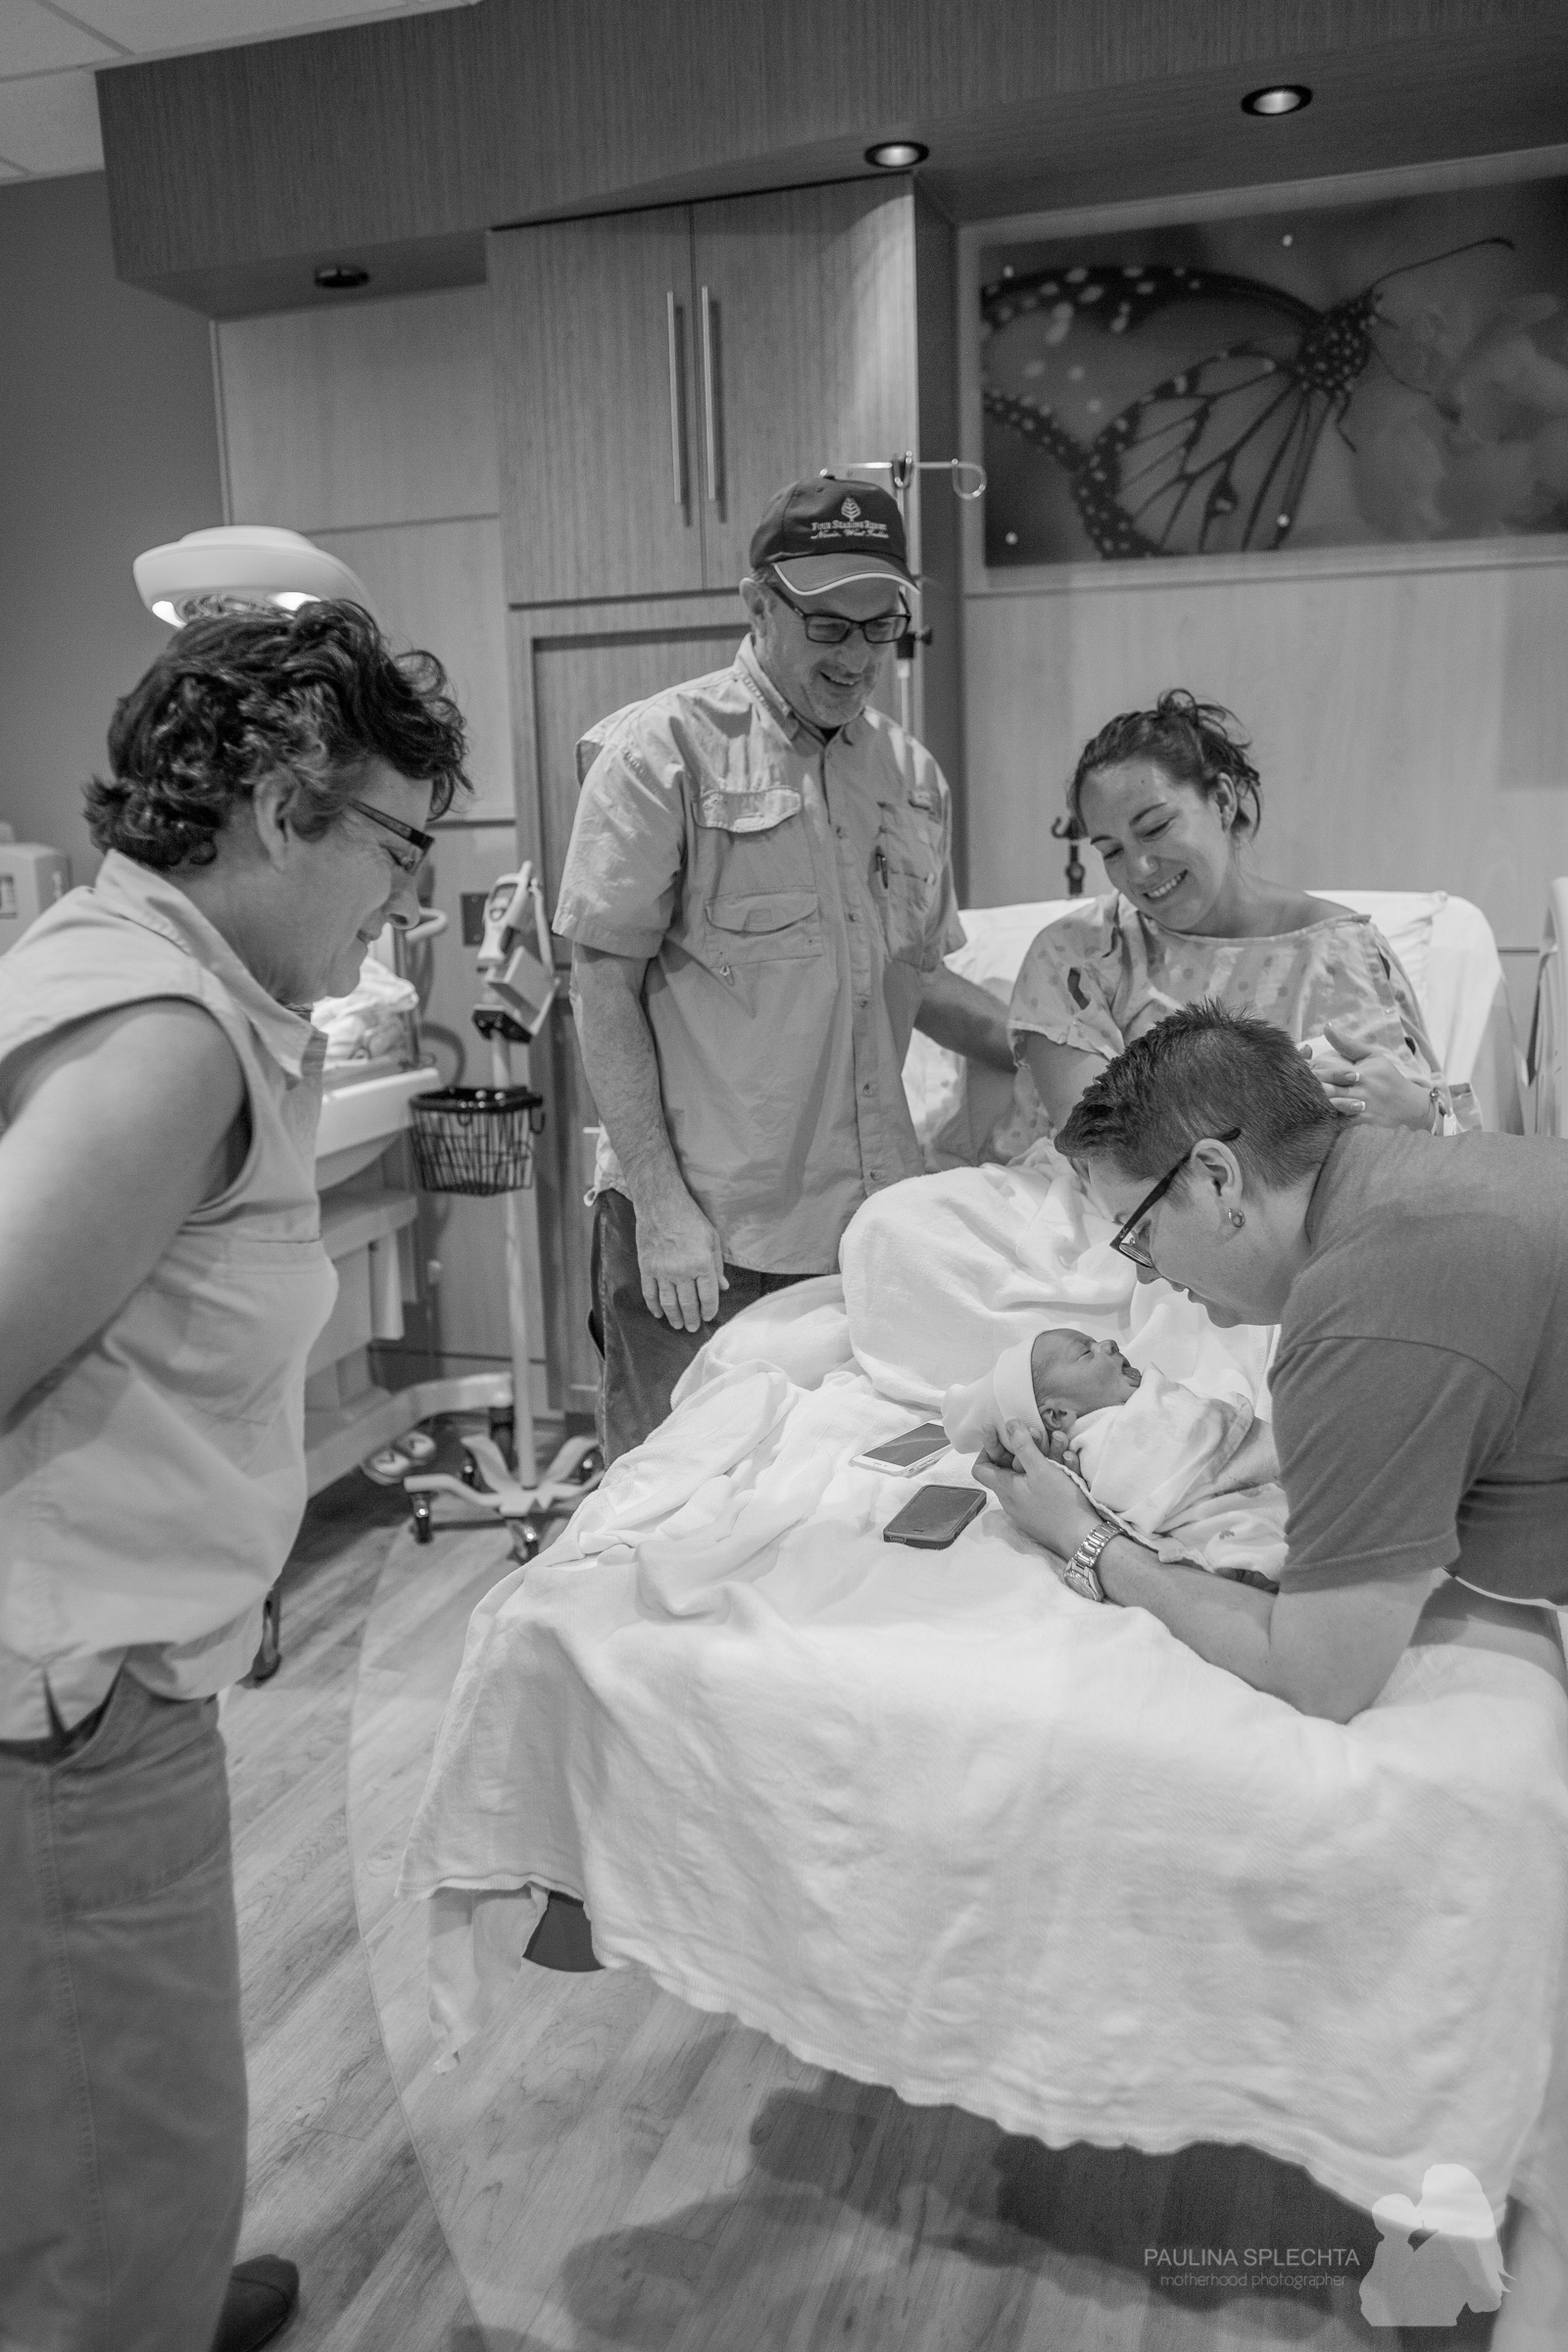 bocabirthphotographer-boca-birth-photographer-birth-center-hospital-hypnobirthing-midwife-doula-trimester-breastfeeding-florida-hollywood-delray-stop-nausea-morning-sickness-29.jpg